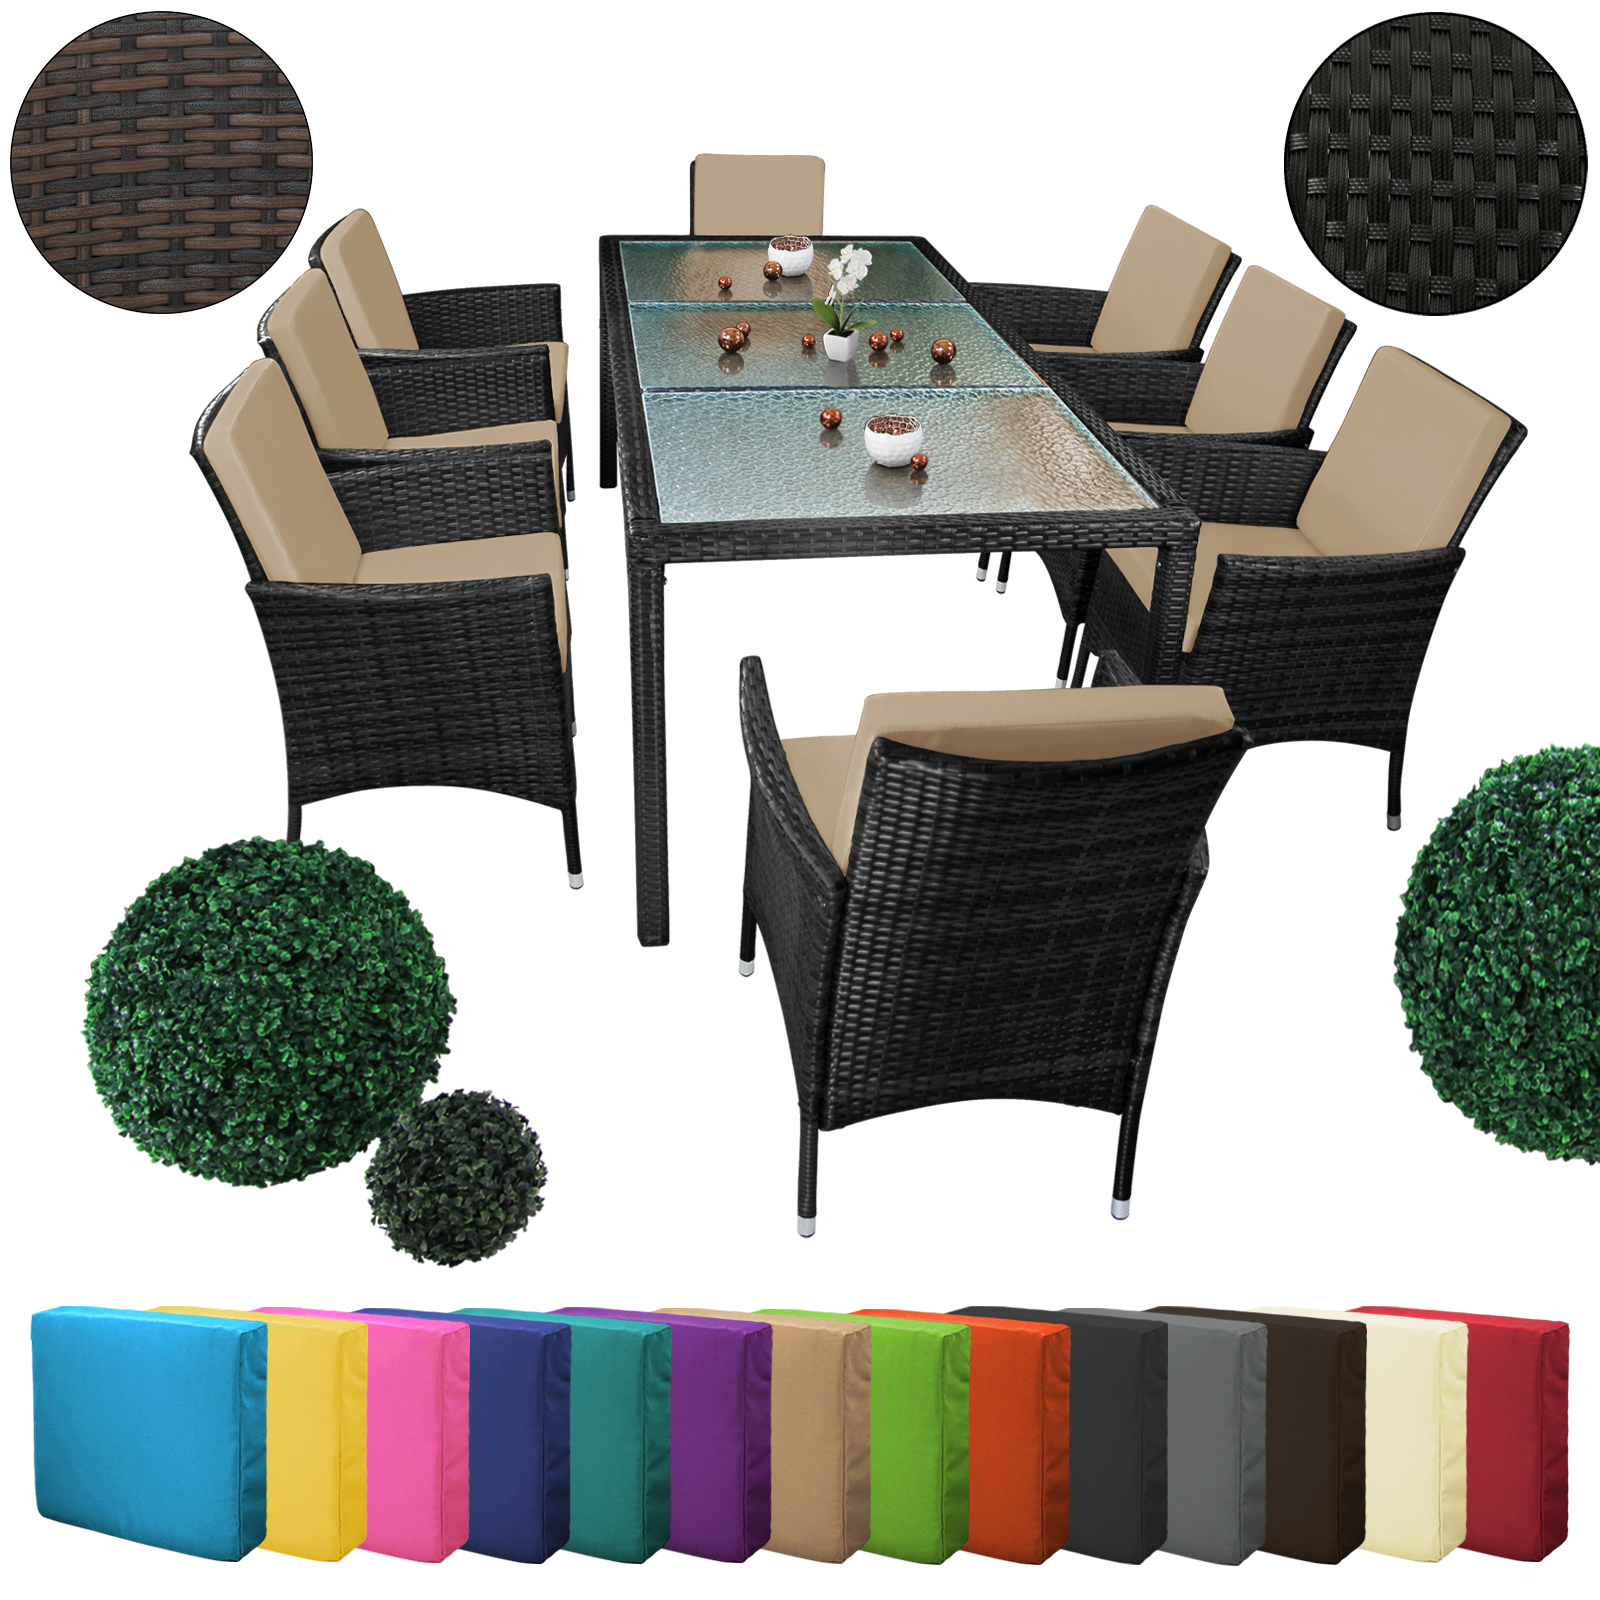 25 teilige polyrattan essgruppe f r 8 personen von bb sport. Black Bedroom Furniture Sets. Home Design Ideas